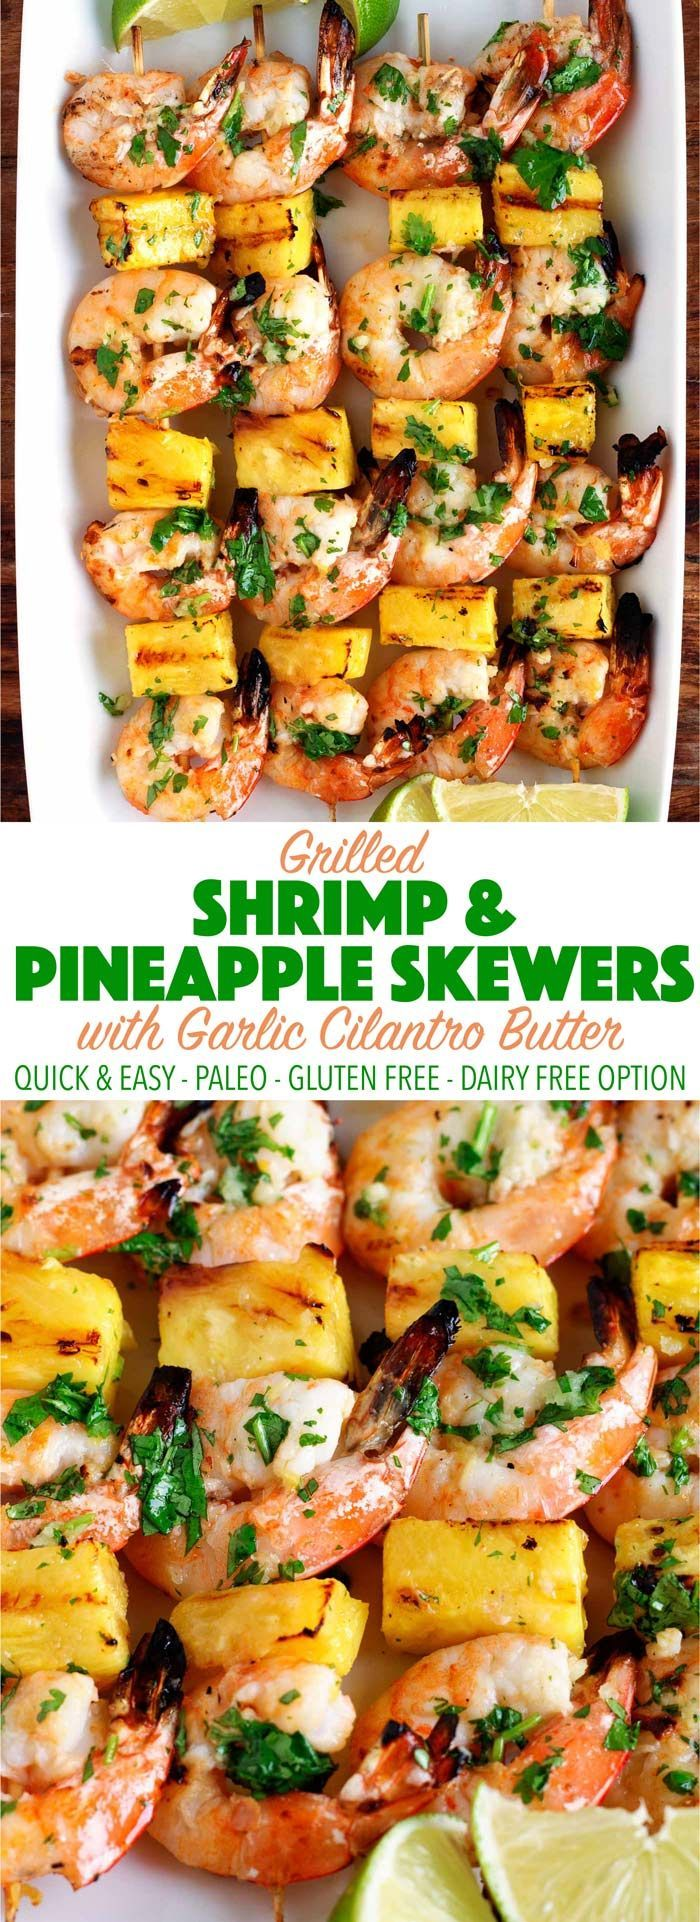 So delicous and easy! Less than 25 mins to make these grilled shrimp and pinappl…